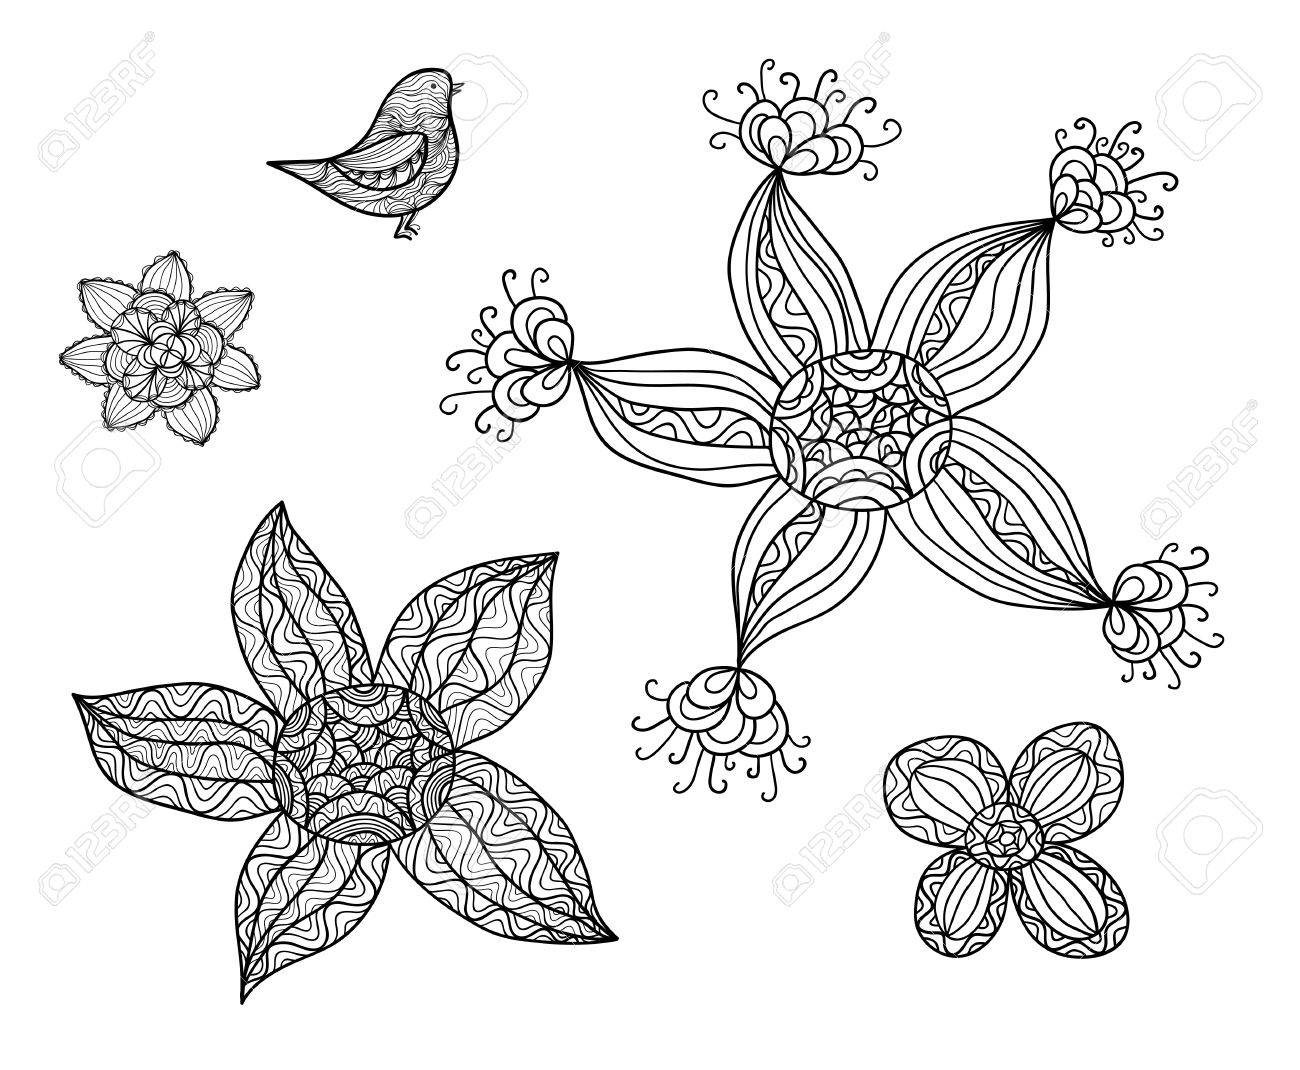 Collection of hand drawn doodles, black and white sketches Stock Vector - 18640540